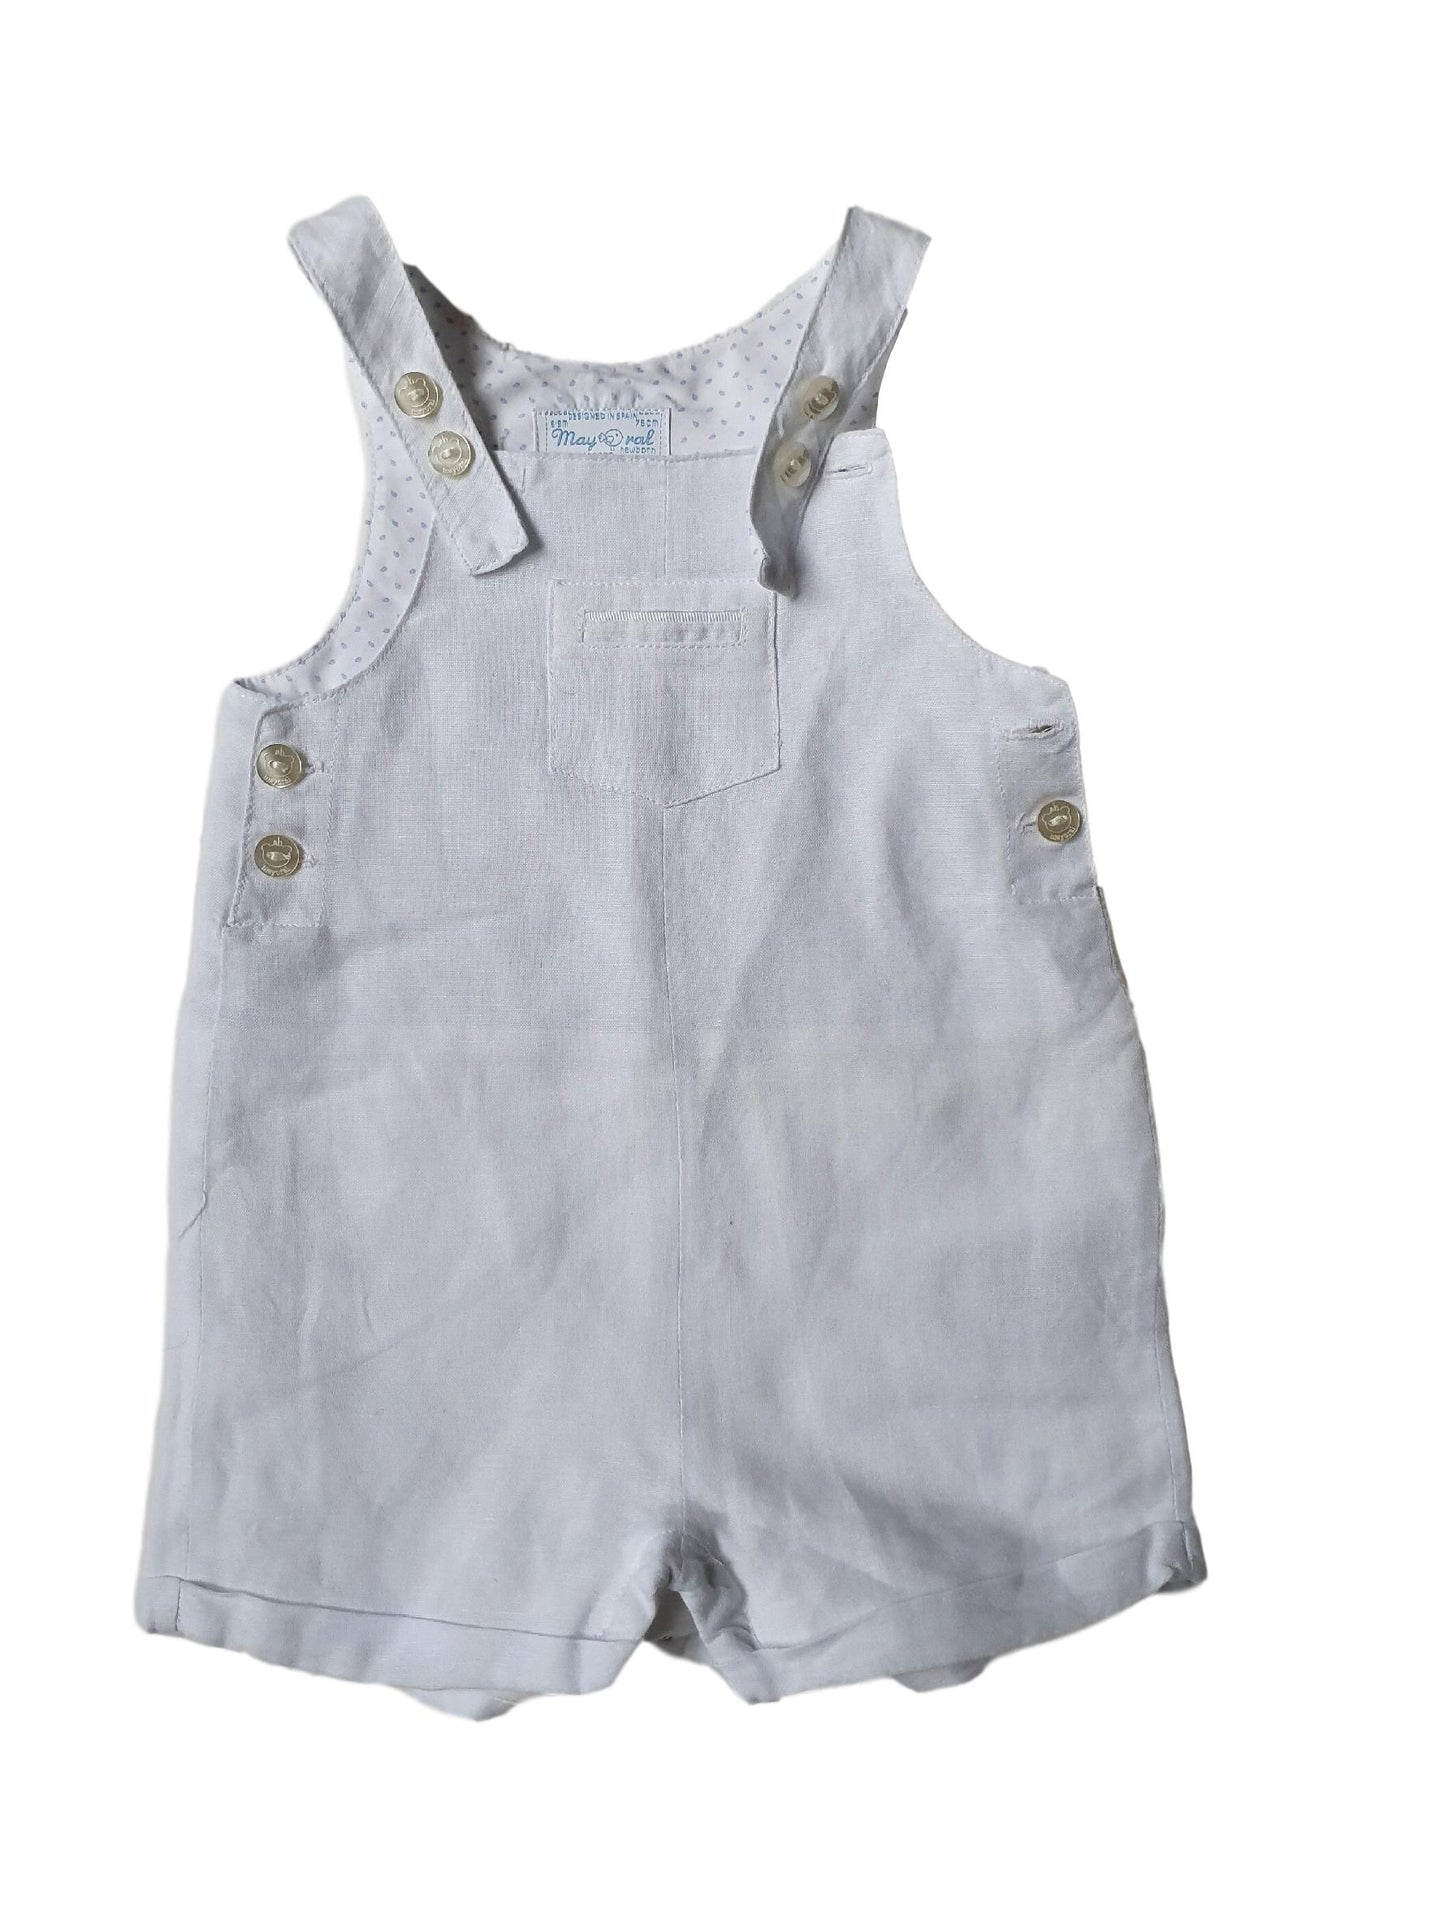 MAYORAL boy dungaree or girl 6m